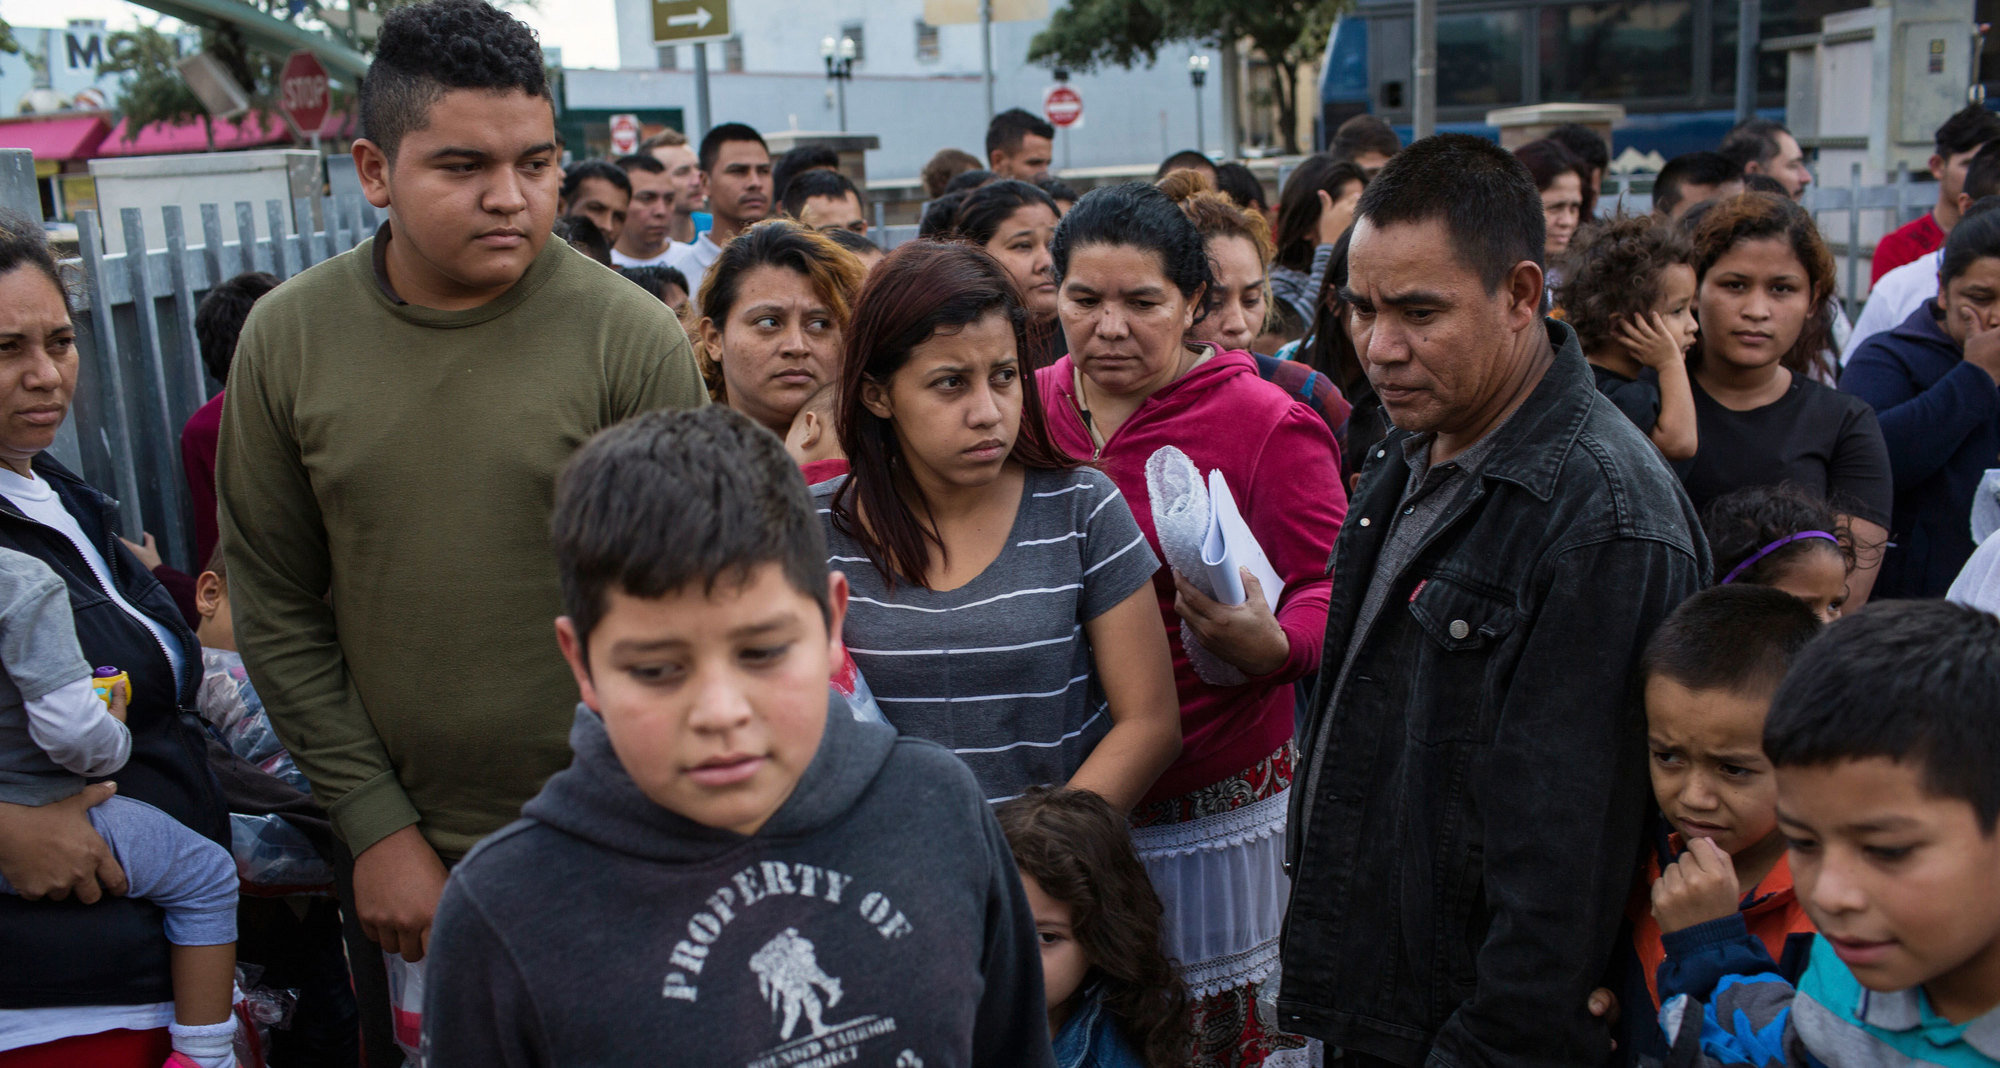 Recent undocumented border crossers arrive at a bus station in McAllen, Texas, after they were processed and released by U.S. Customs and Border Protection.